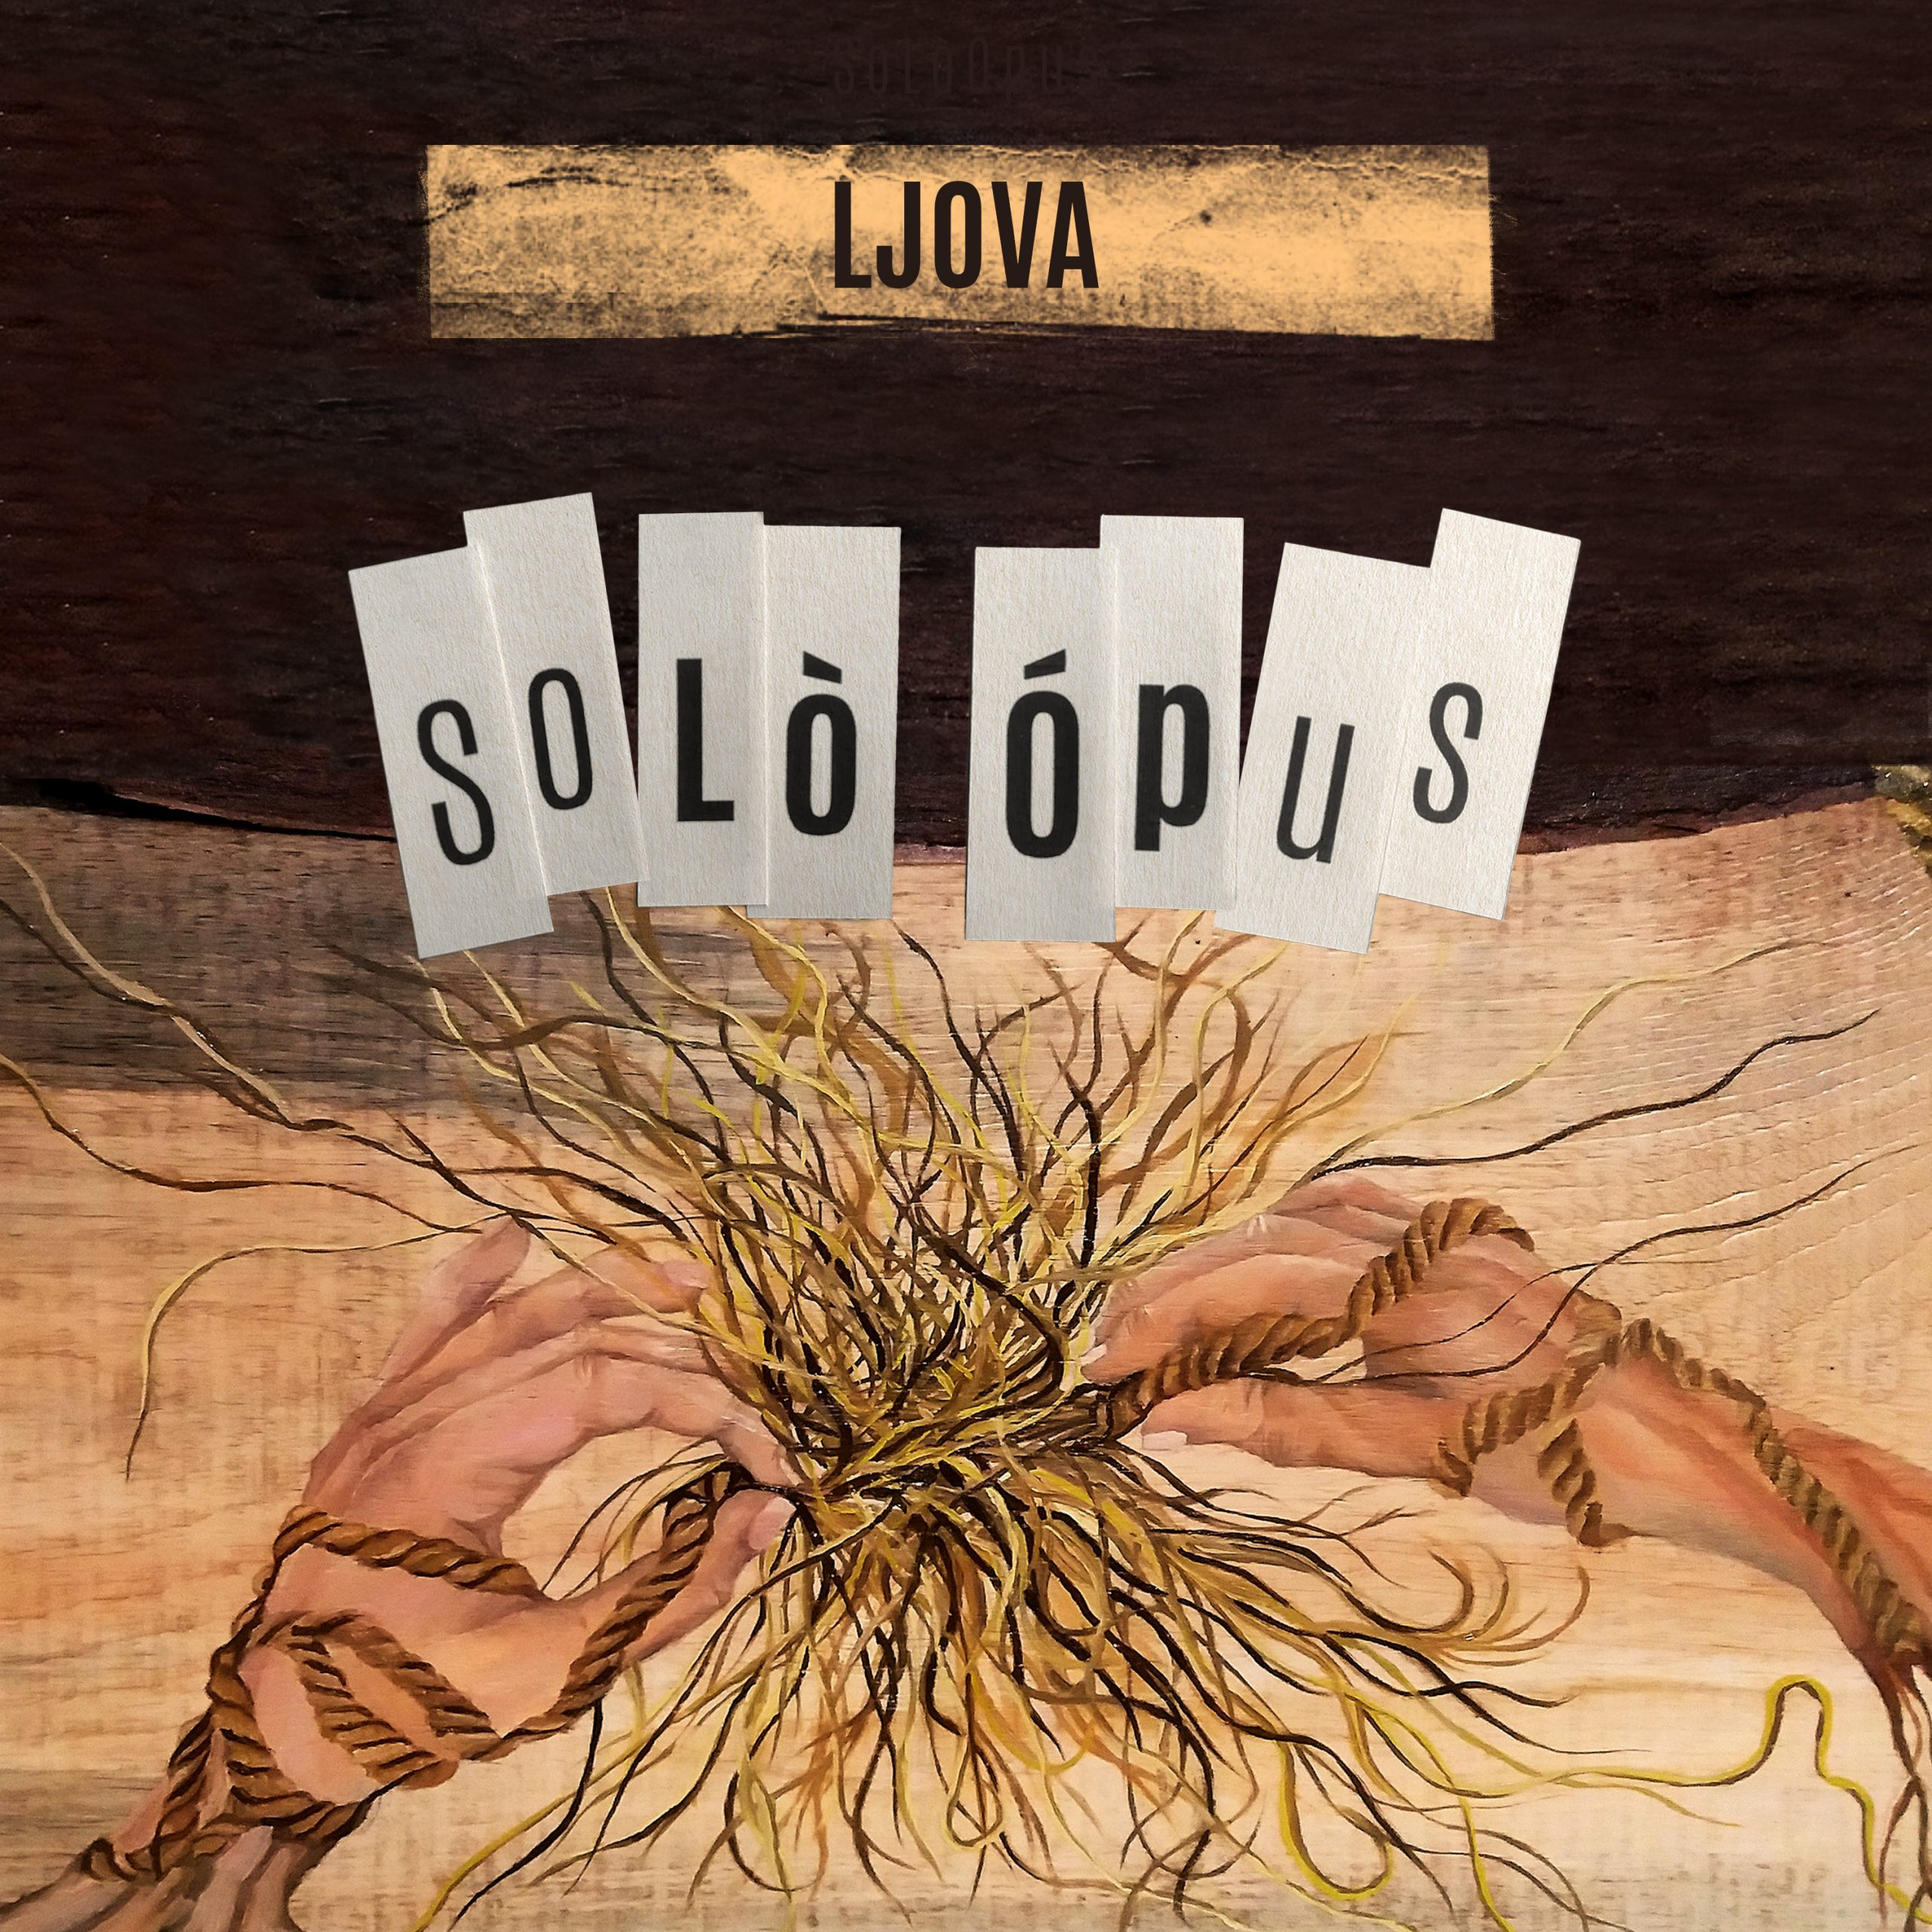 Ljova's tenth album - Solo Opus